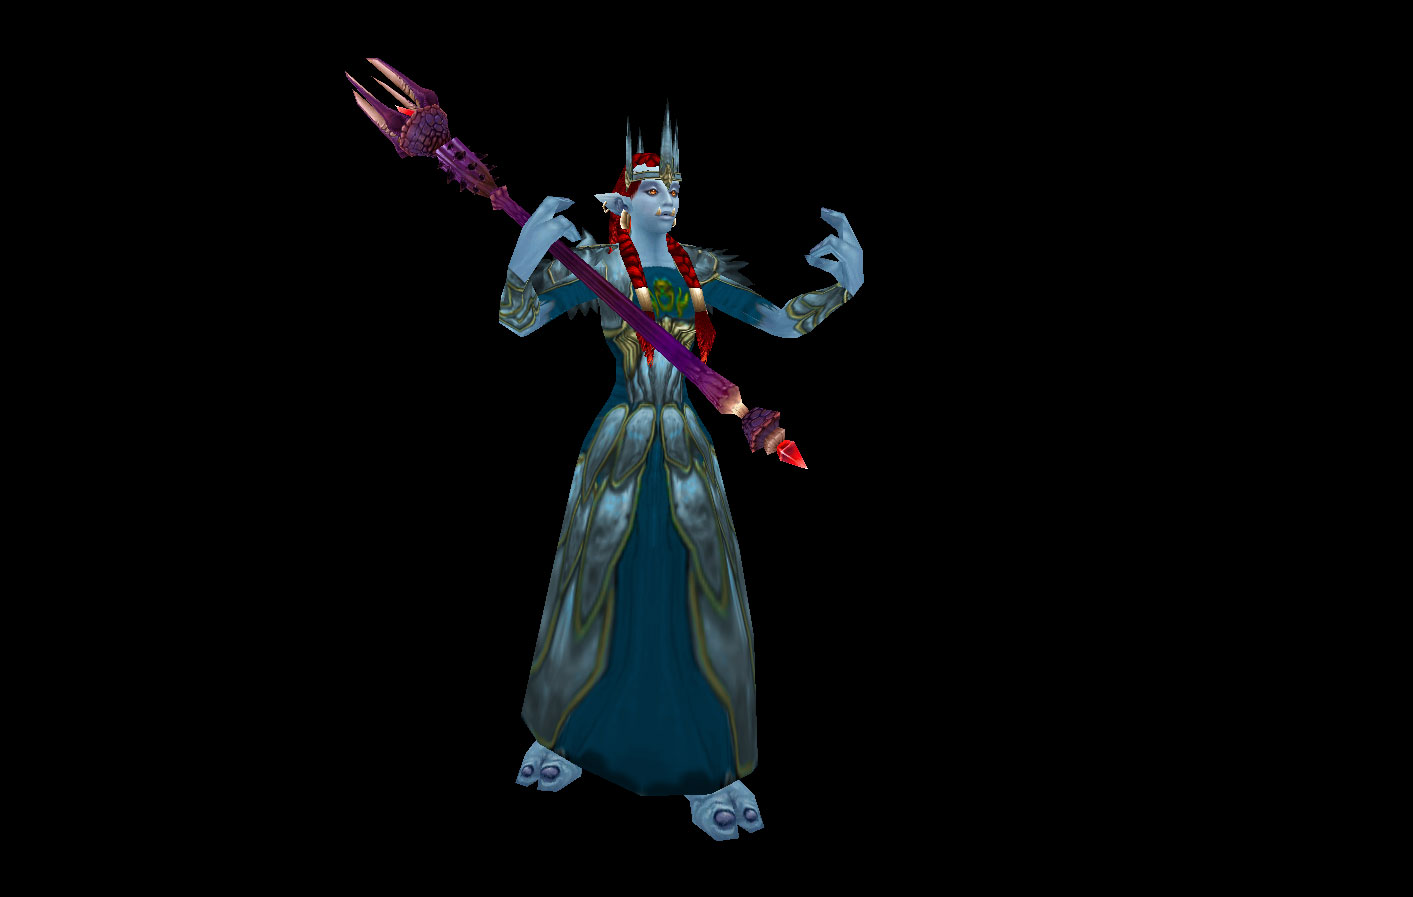 Enigma Vestments (Mage) and Blessed Qiraji Acolyte Staff